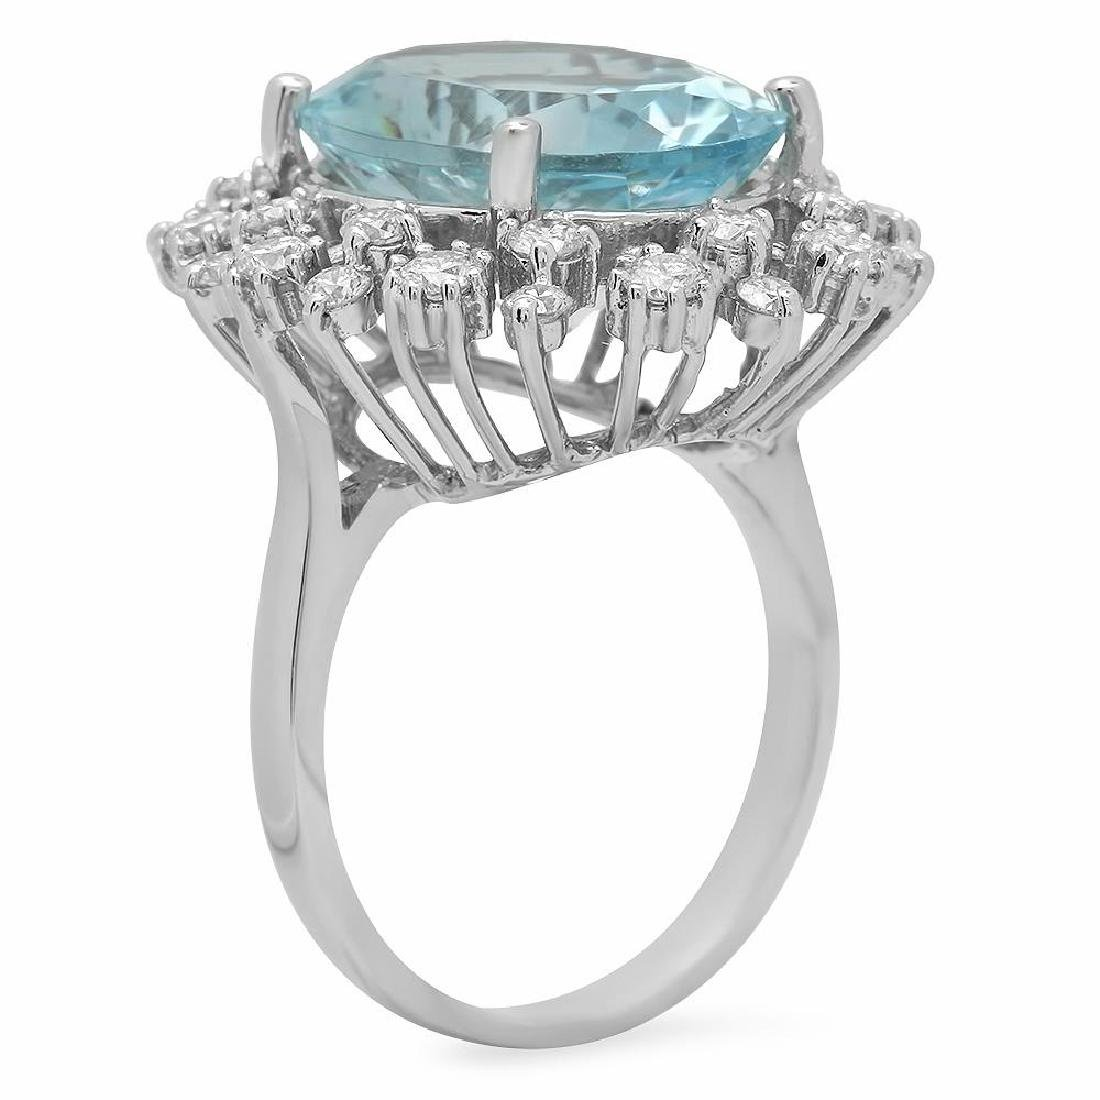 14K Gold 8.00ct Aquamarine 1.23ct Diamond Ring - 2